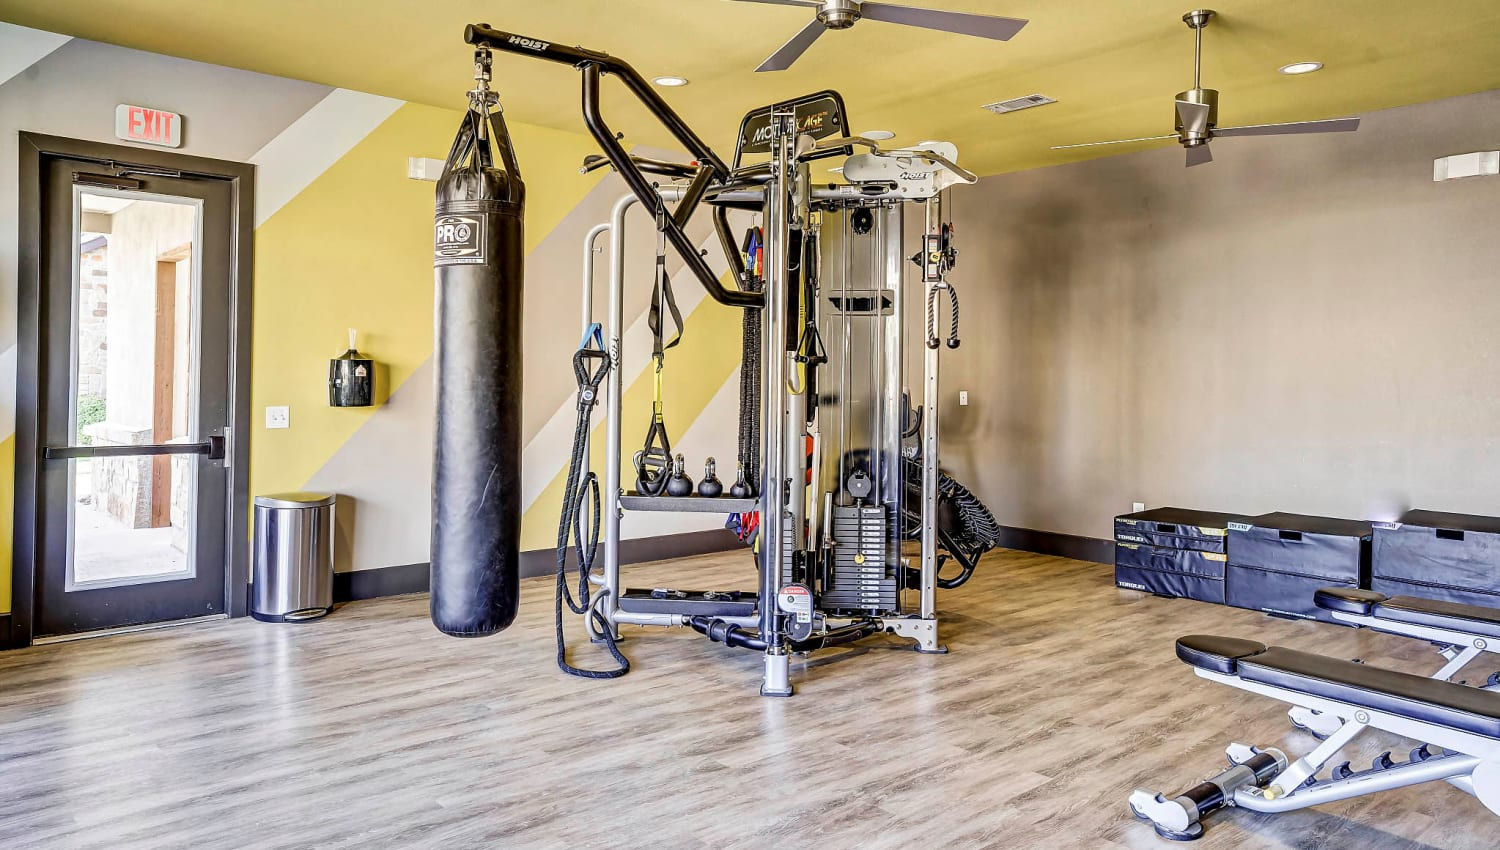 Heavy bag in the onsite fitness center at Sundance Creek in Midland, Texas